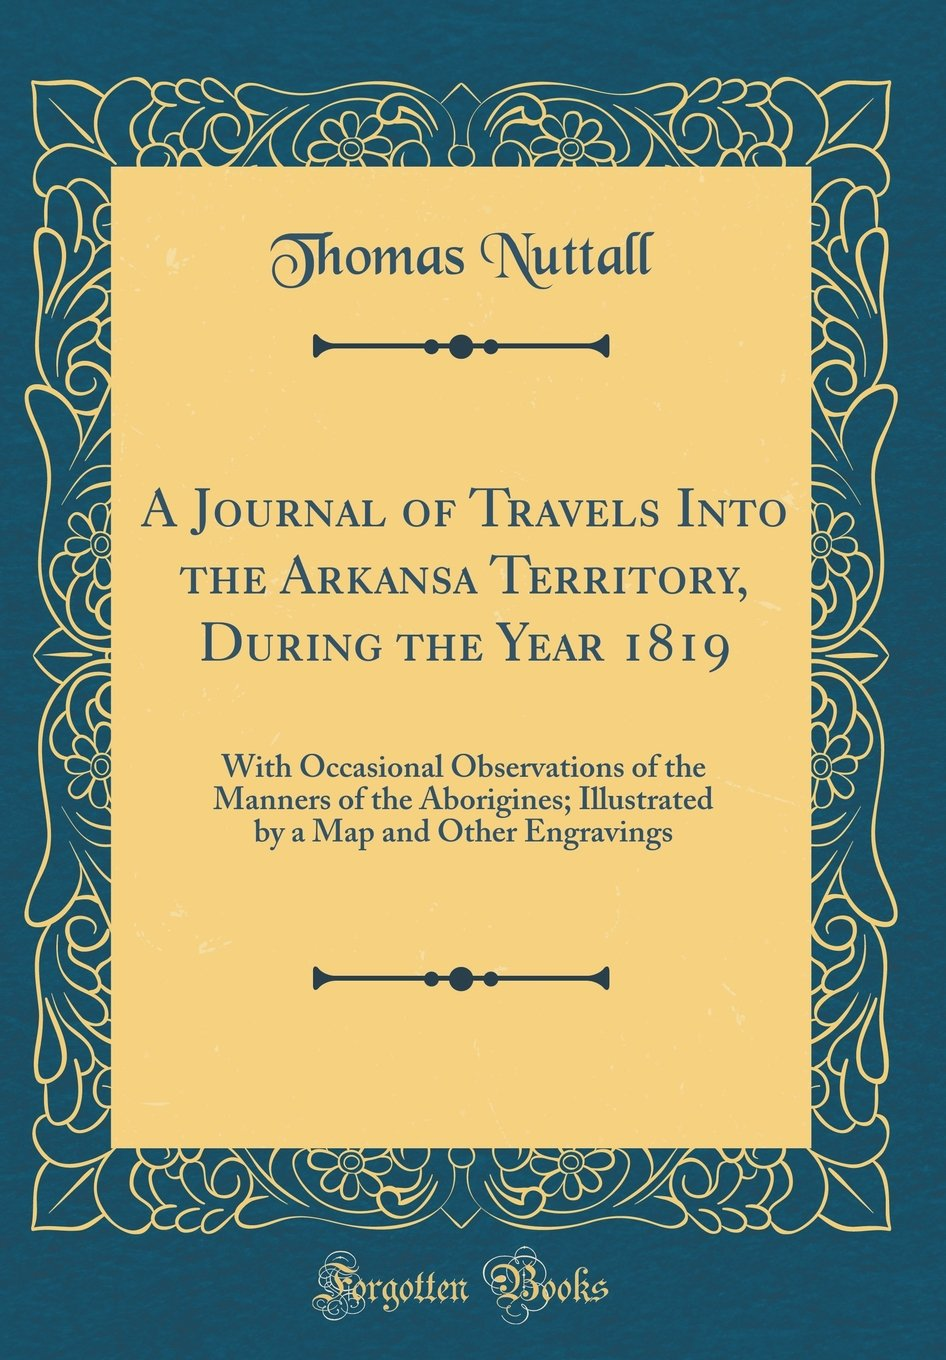 Read Online A Journal of Travels Into the Arkansa Territory, During the Year 1819: With Occasional Observations of the Manners of the Aborigines; Illustrated by a Map and Other Engravings (Classic Reprint) ebook